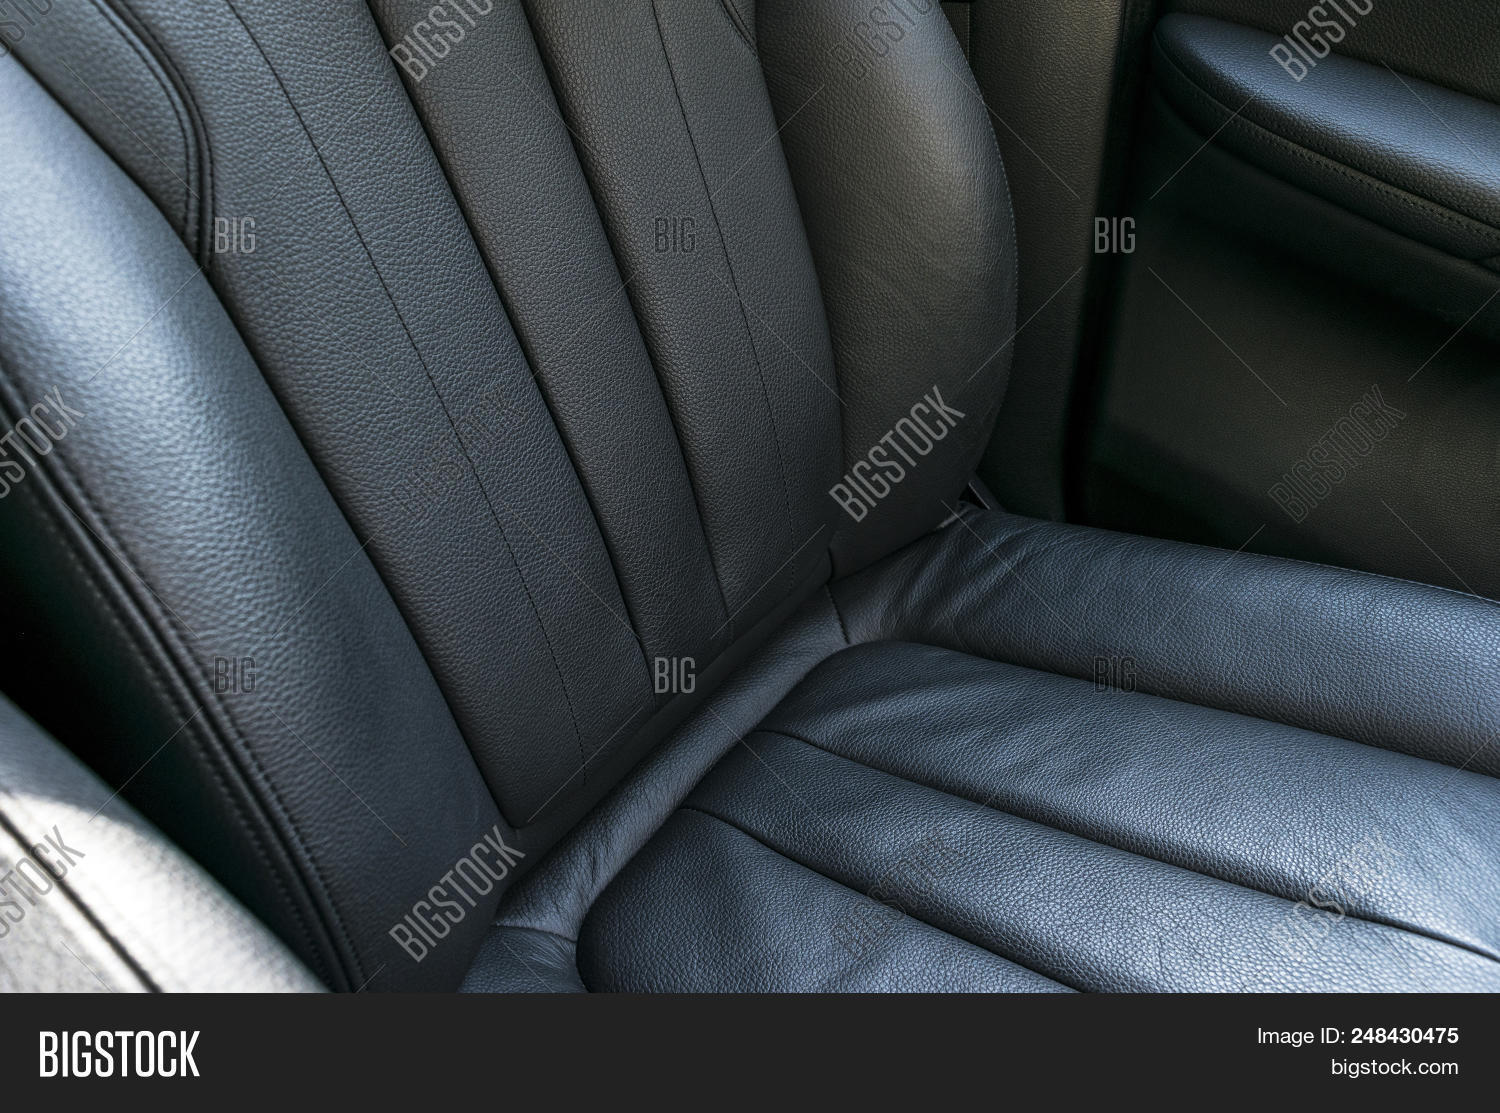 Modern Luxury Car Black Perforated Leather Interior Part Of Seat Details Detailing Door Handle Inside